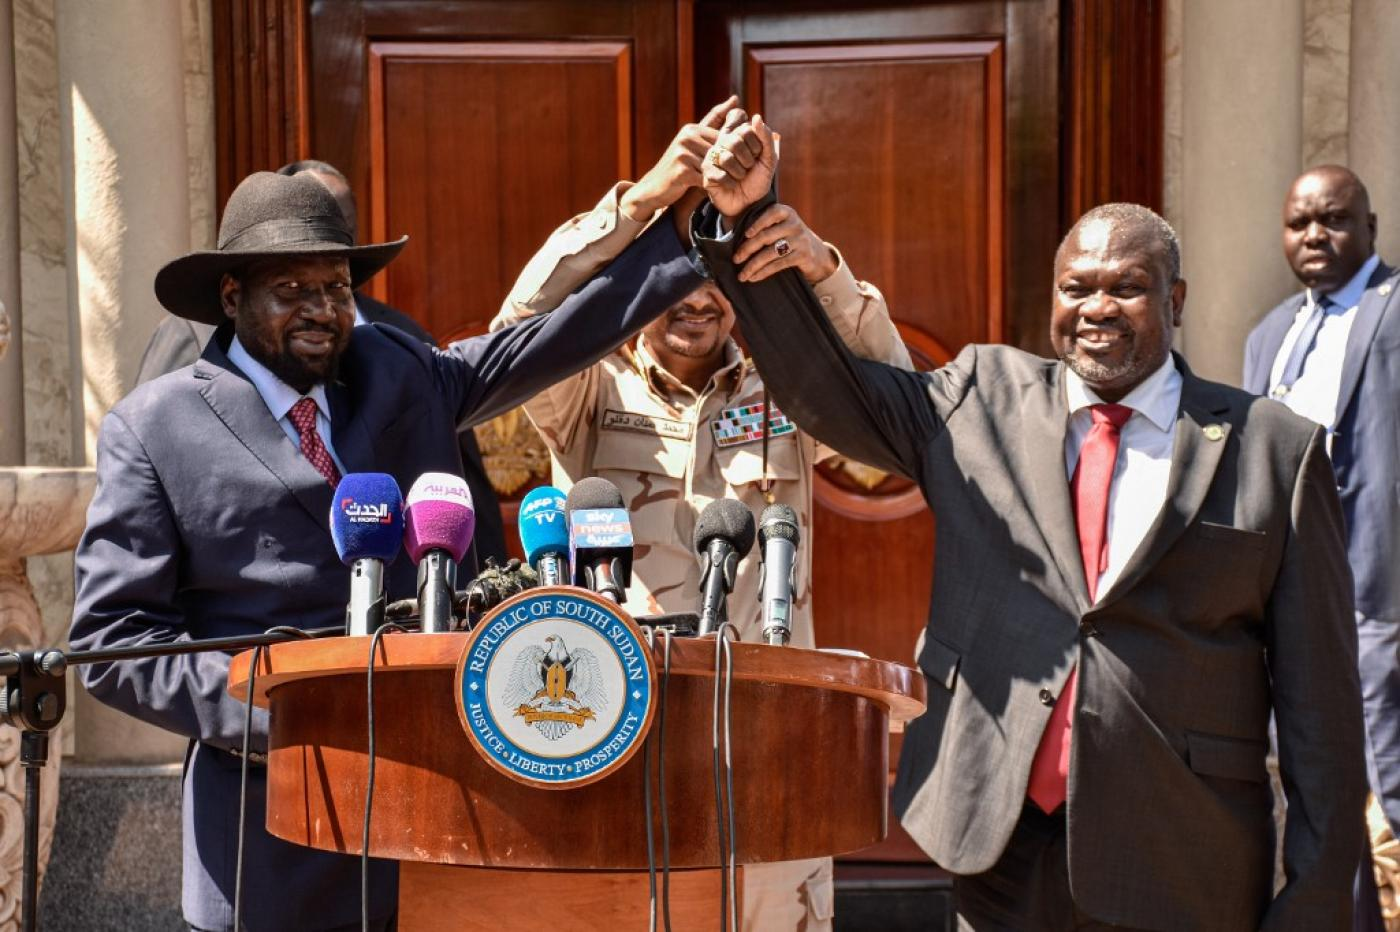 Salva Kiir appoints Machar as First Vice President